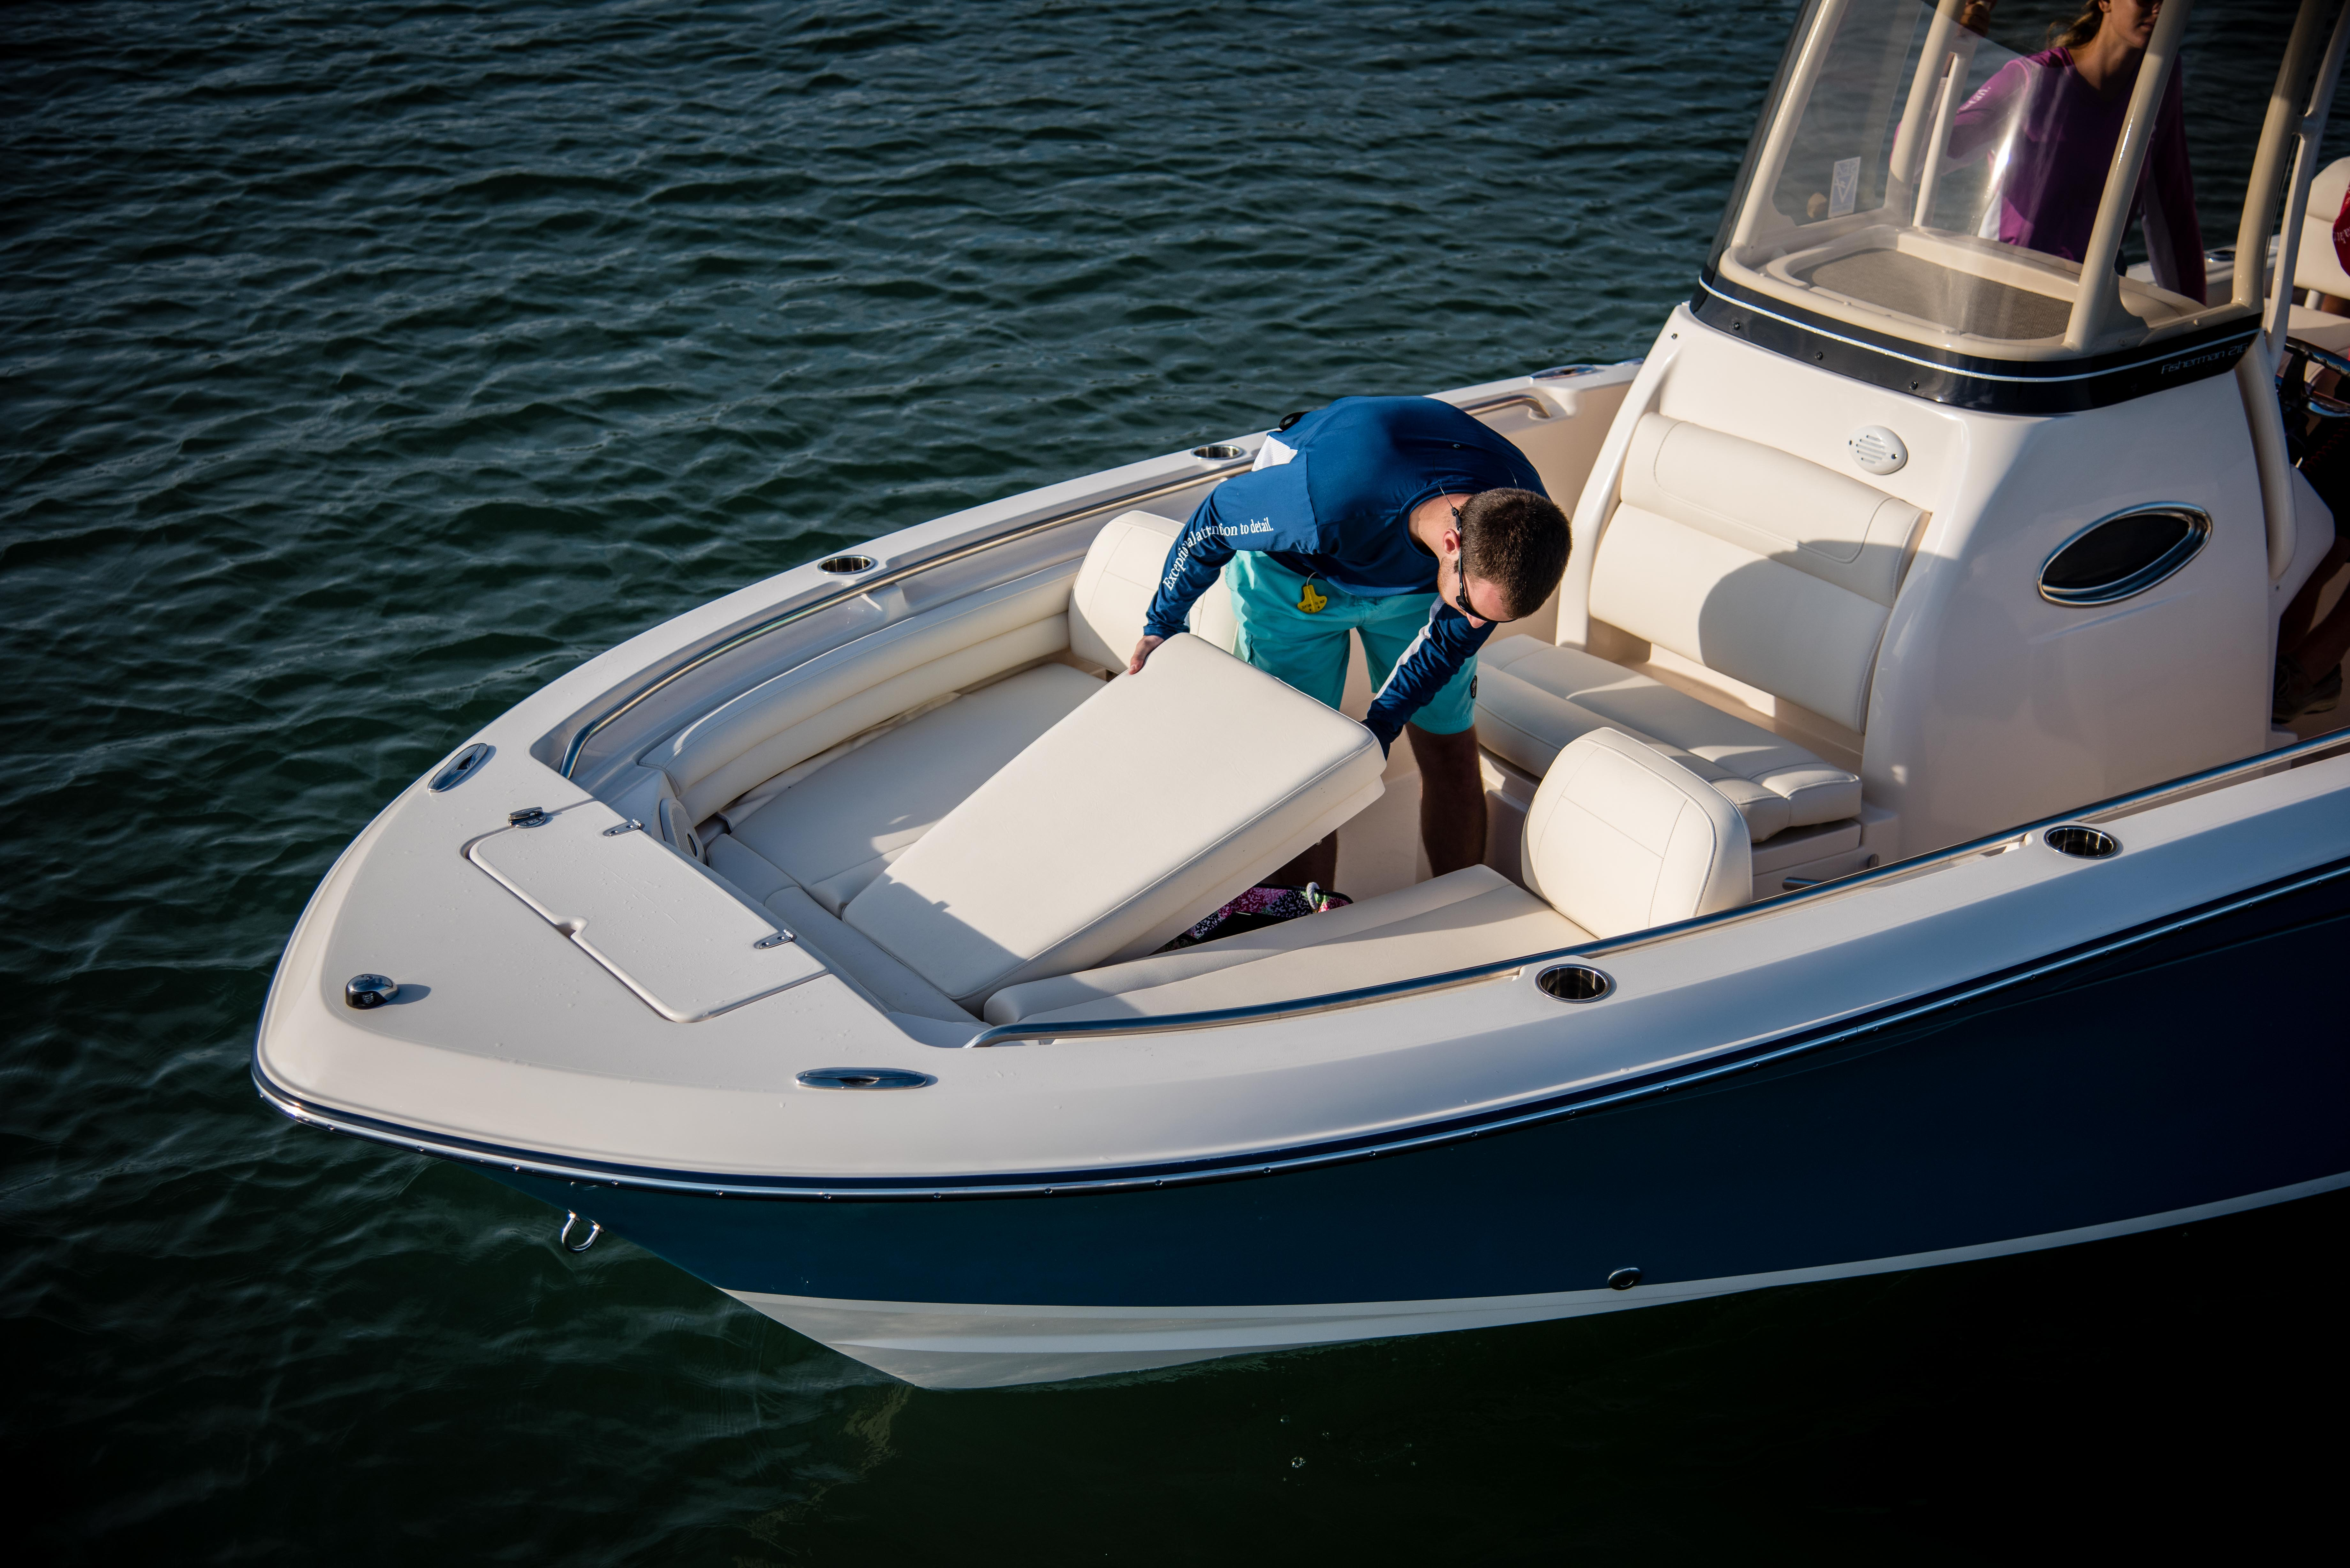 The Fisherman 216 has a bow insert for casting or use as a sun pad.